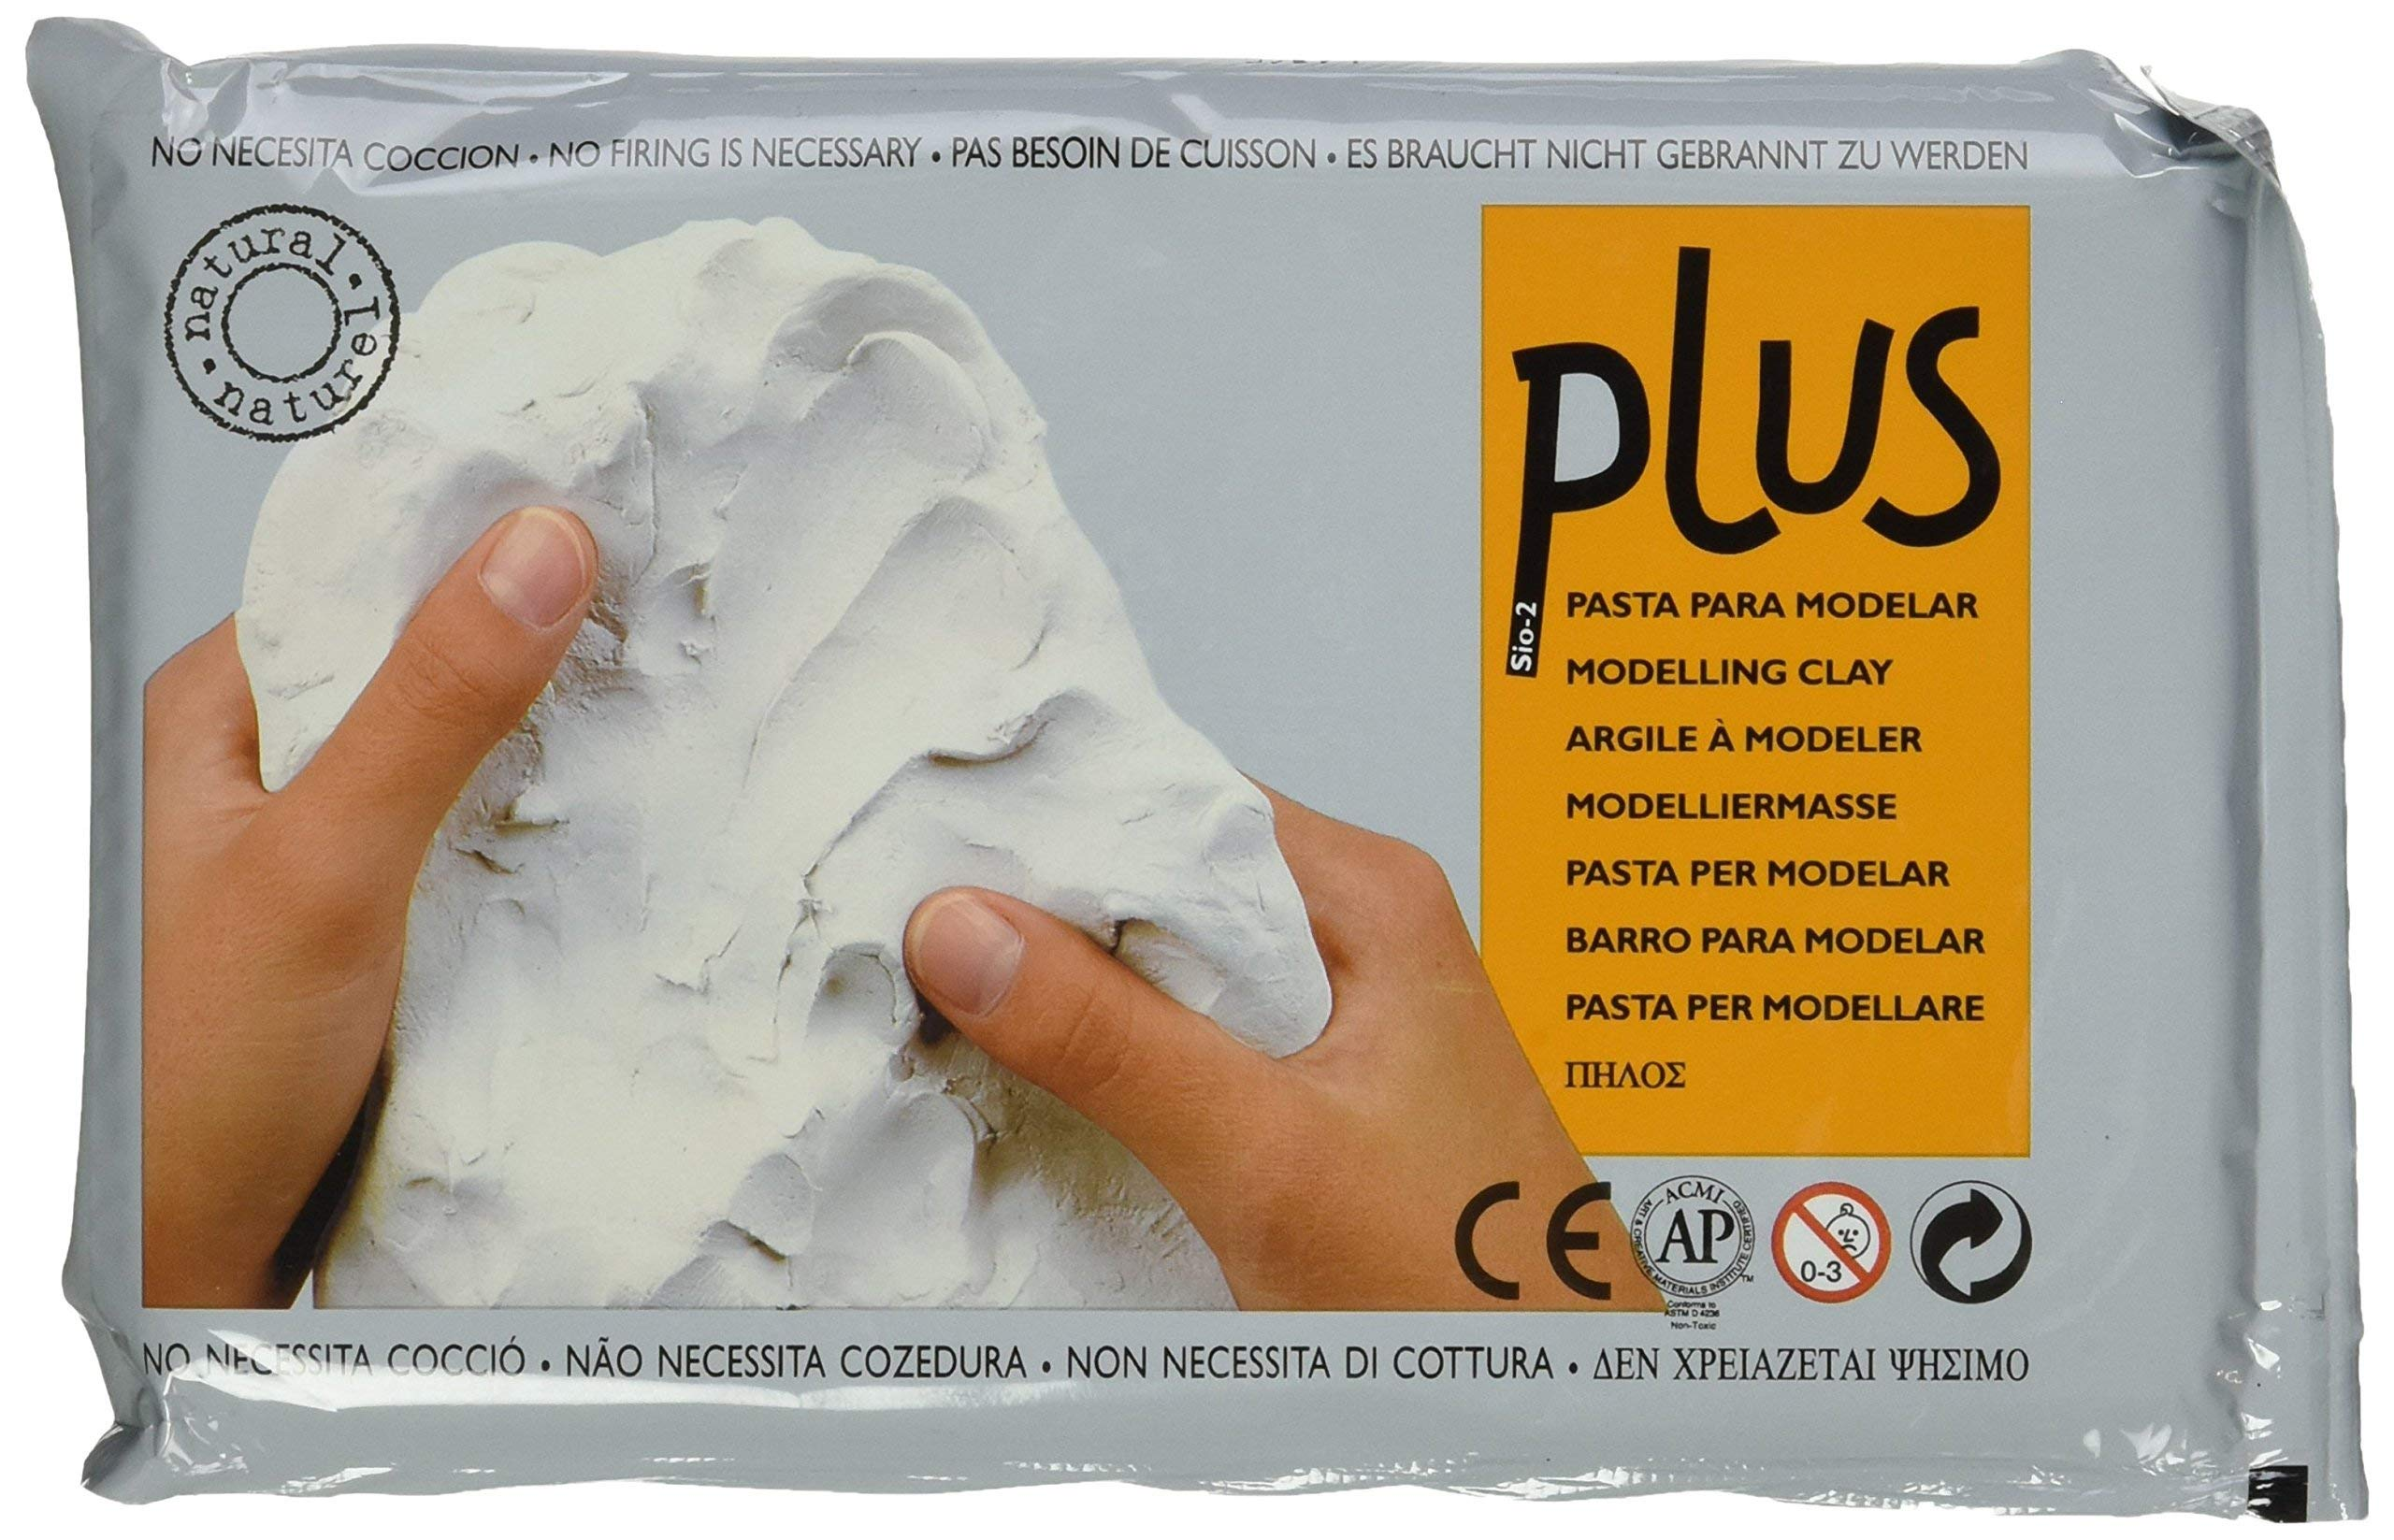 ACTIVA Plus Natural Self-Hardening Clay White 2.2 pounds